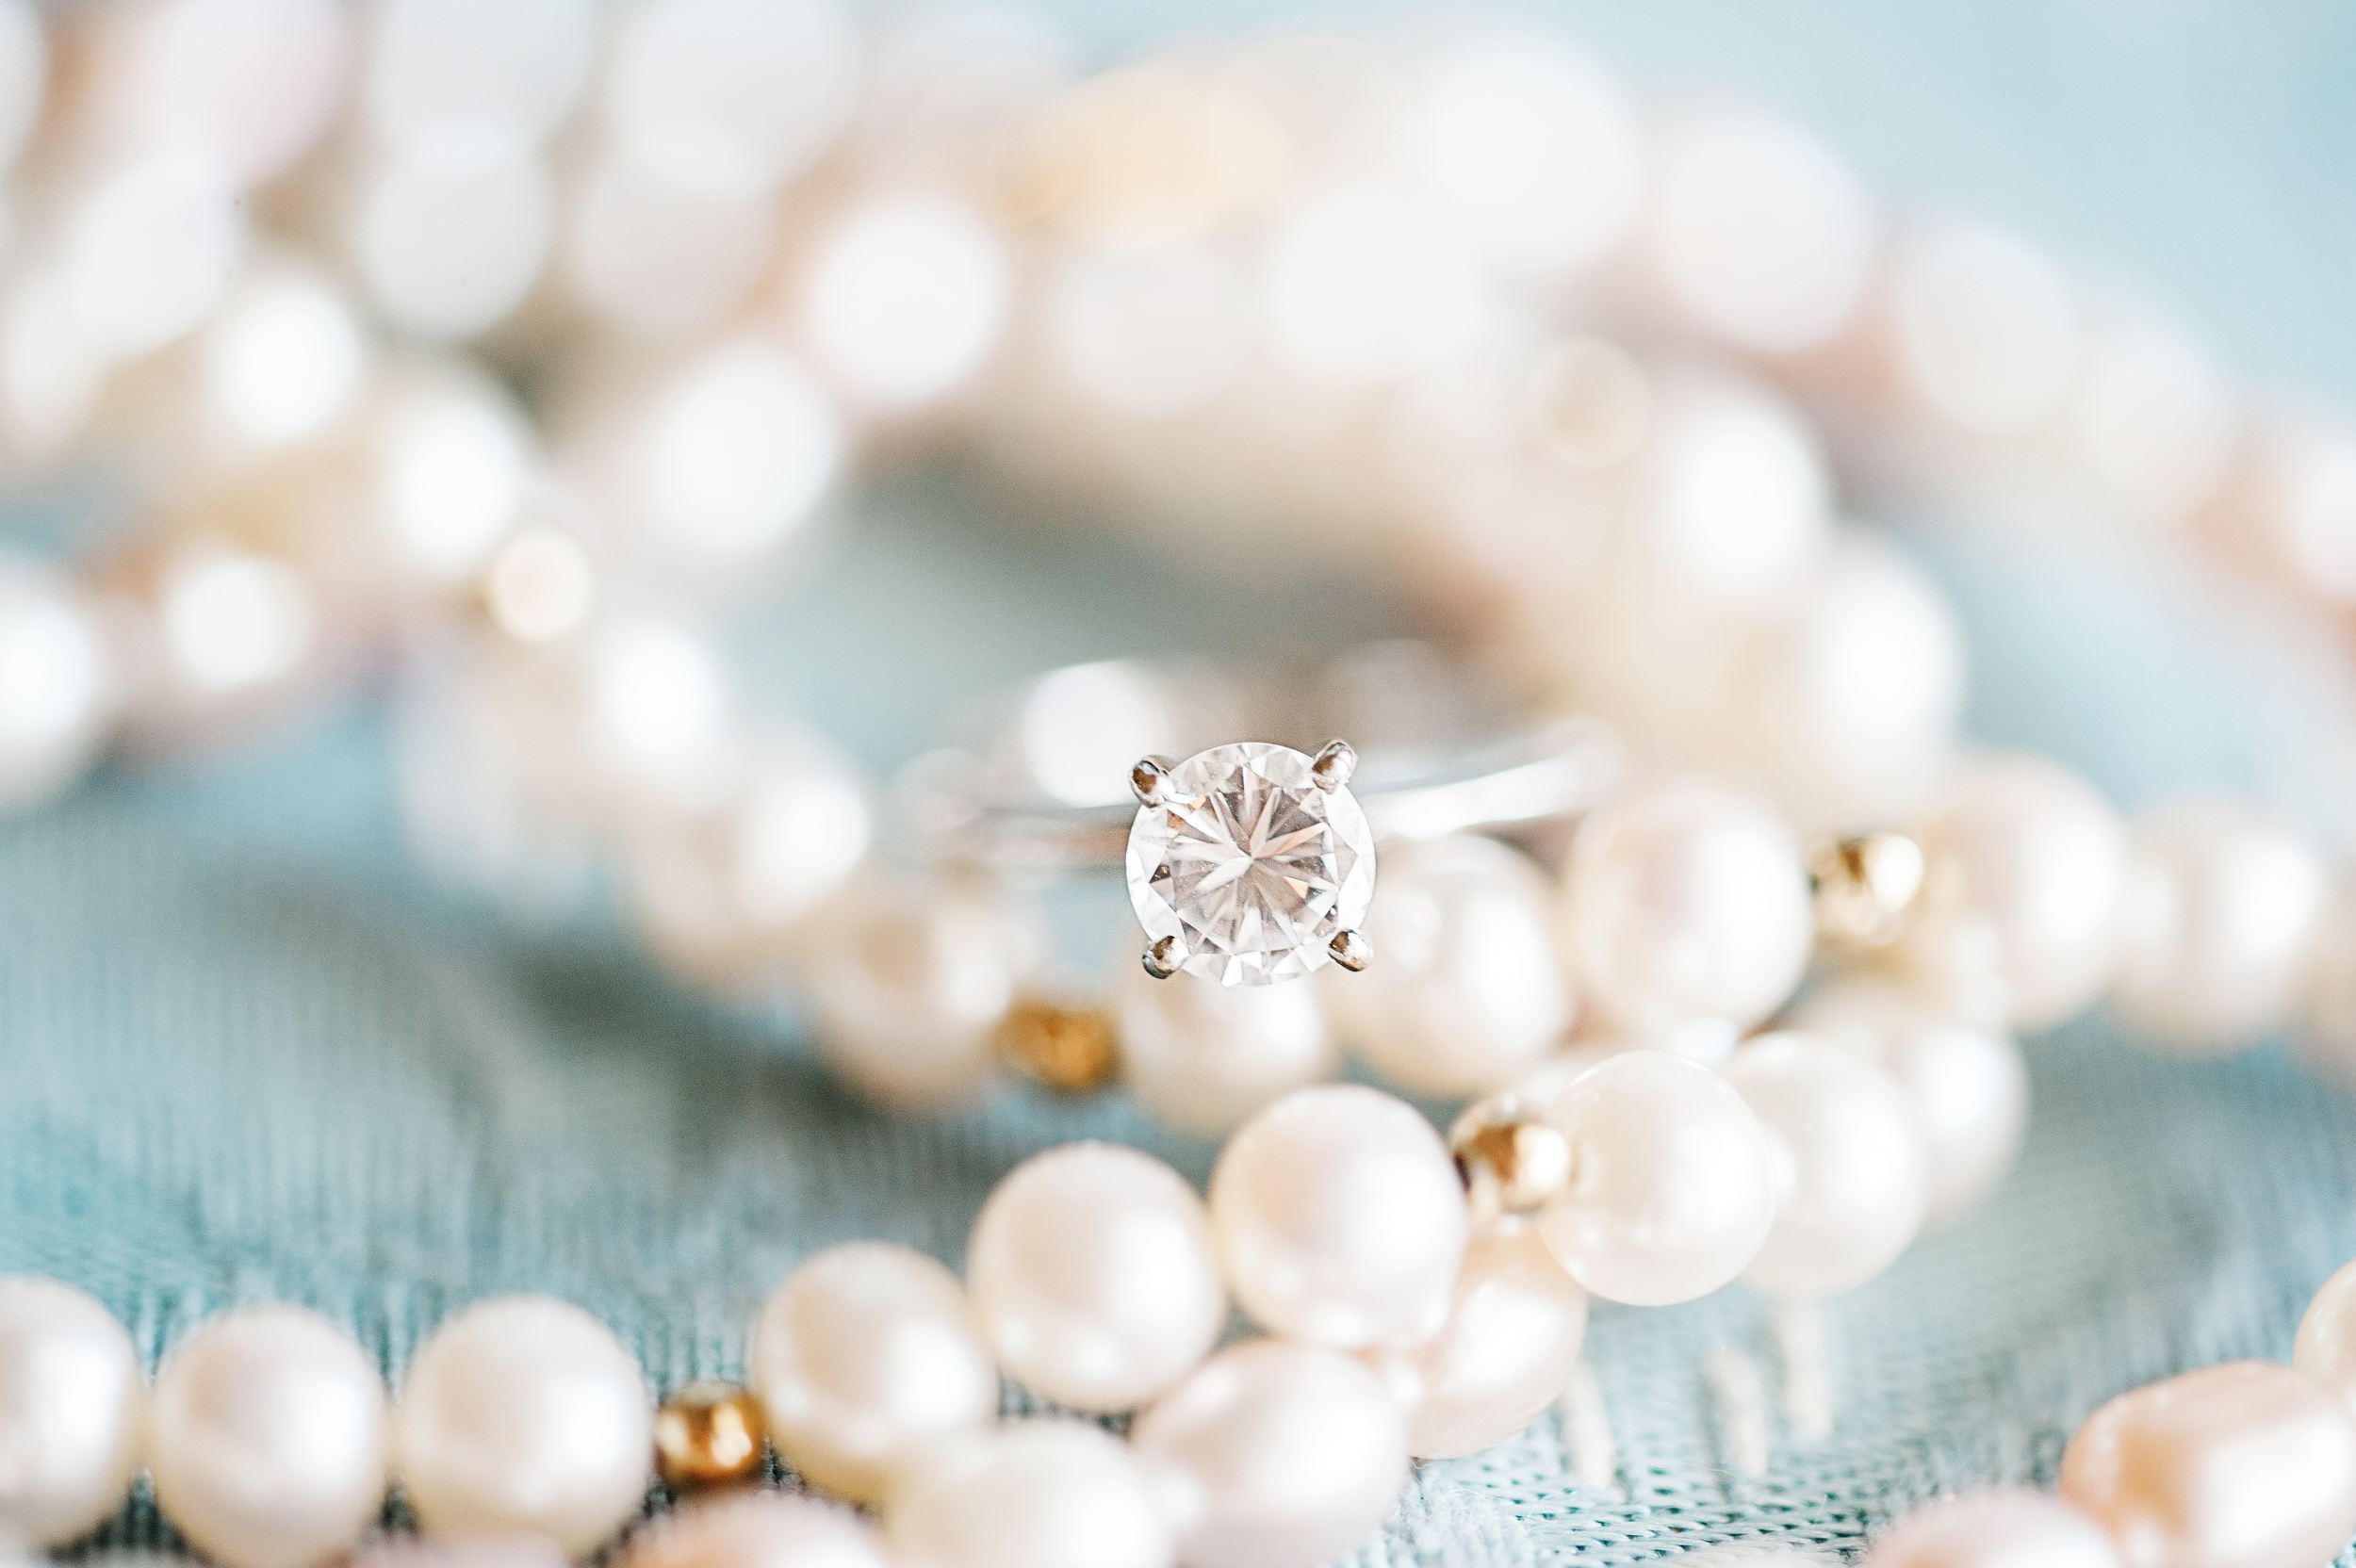 weddinginspirationtheweddingringandpearls